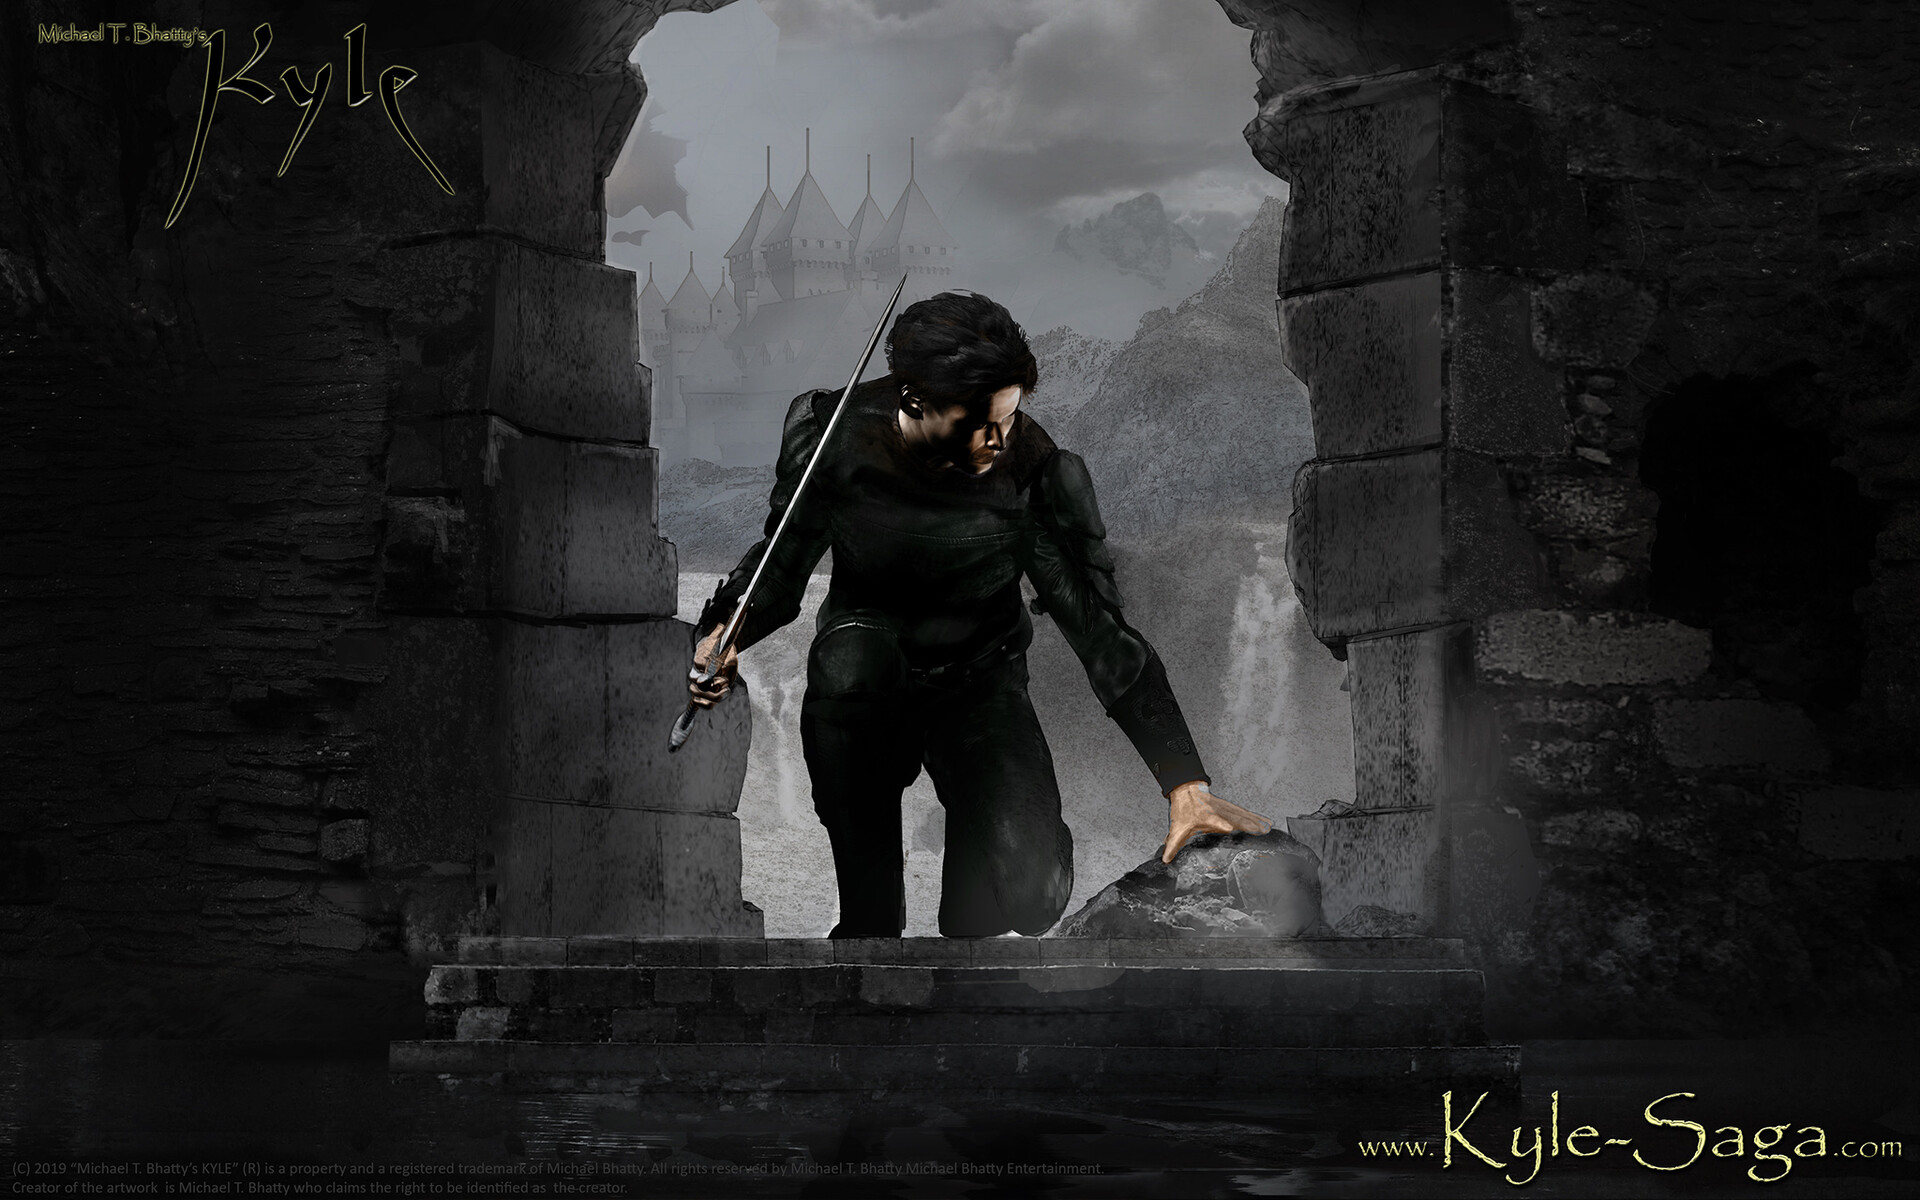 KYLE 2 | Payntorra - a work in progress study for my upcoming novel.